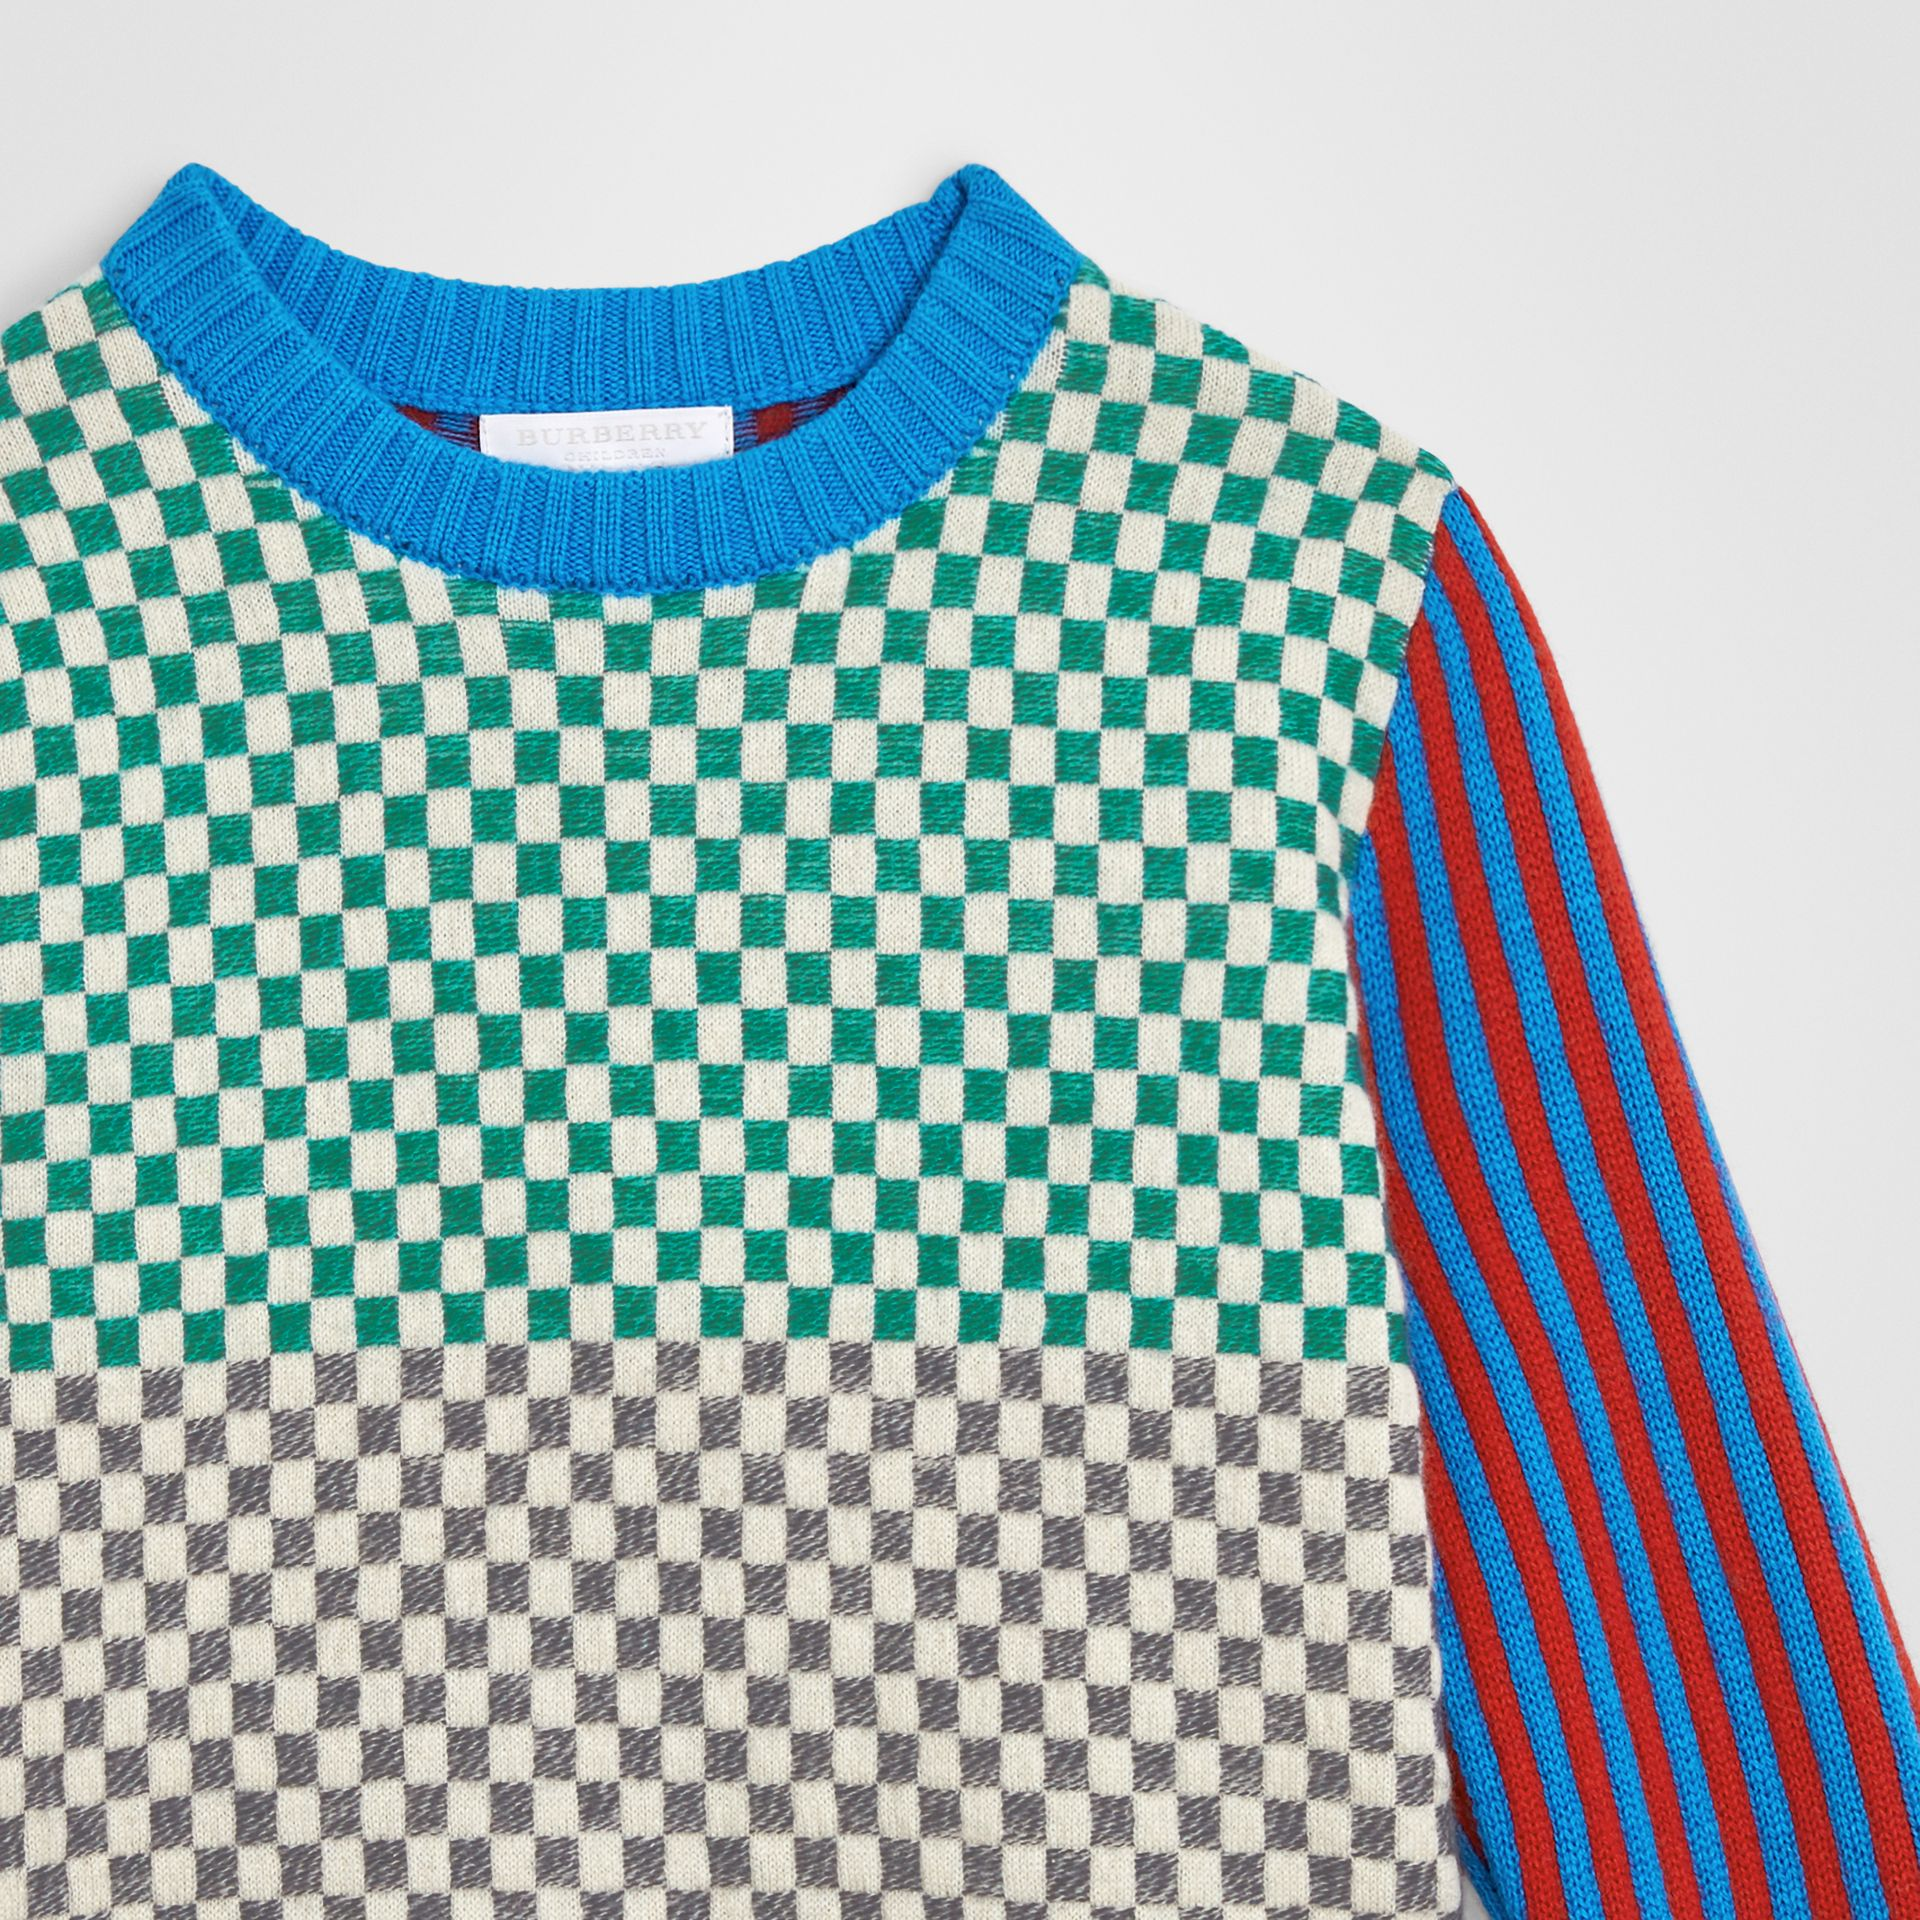 Graphic Cashmere Jacquard Sweater in Multicolour | Burberry - gallery image 4